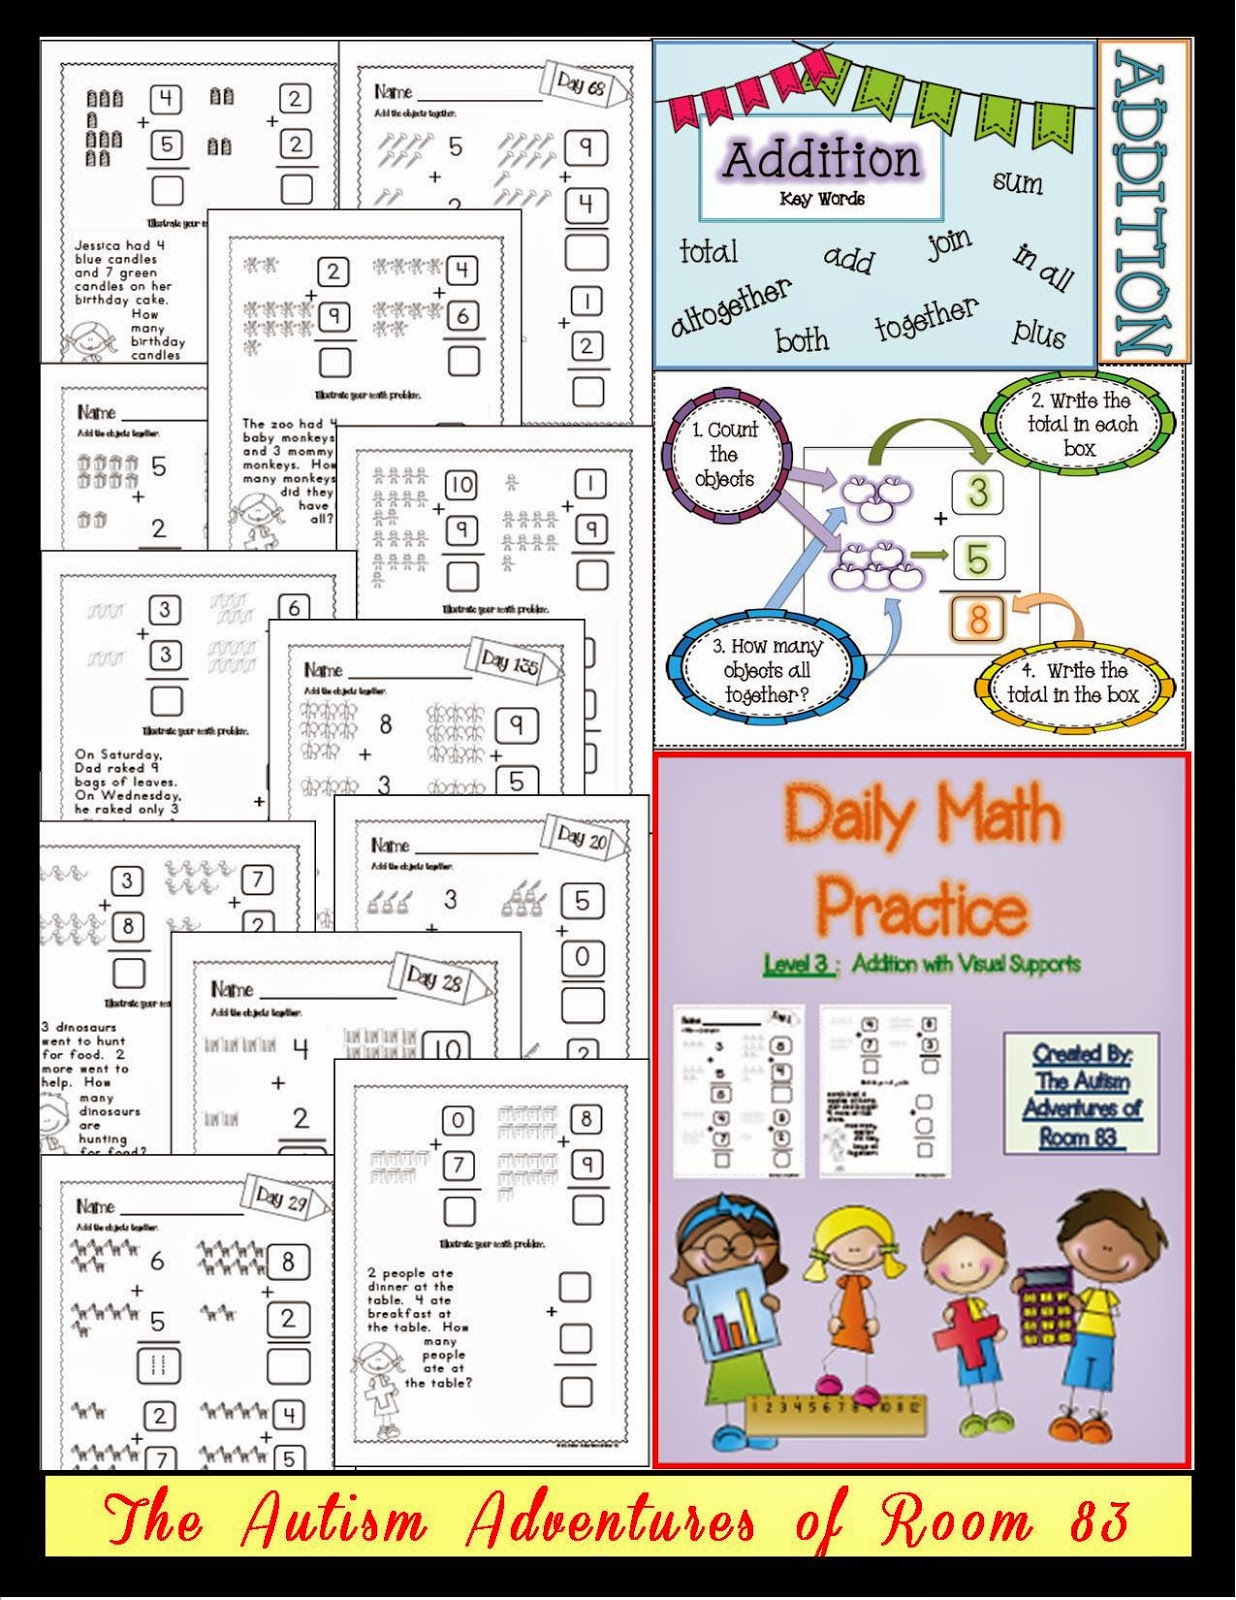 math worksheet : daily math practice level 3 addition with visuals  the autism  : Daily Math Practice Worksheets